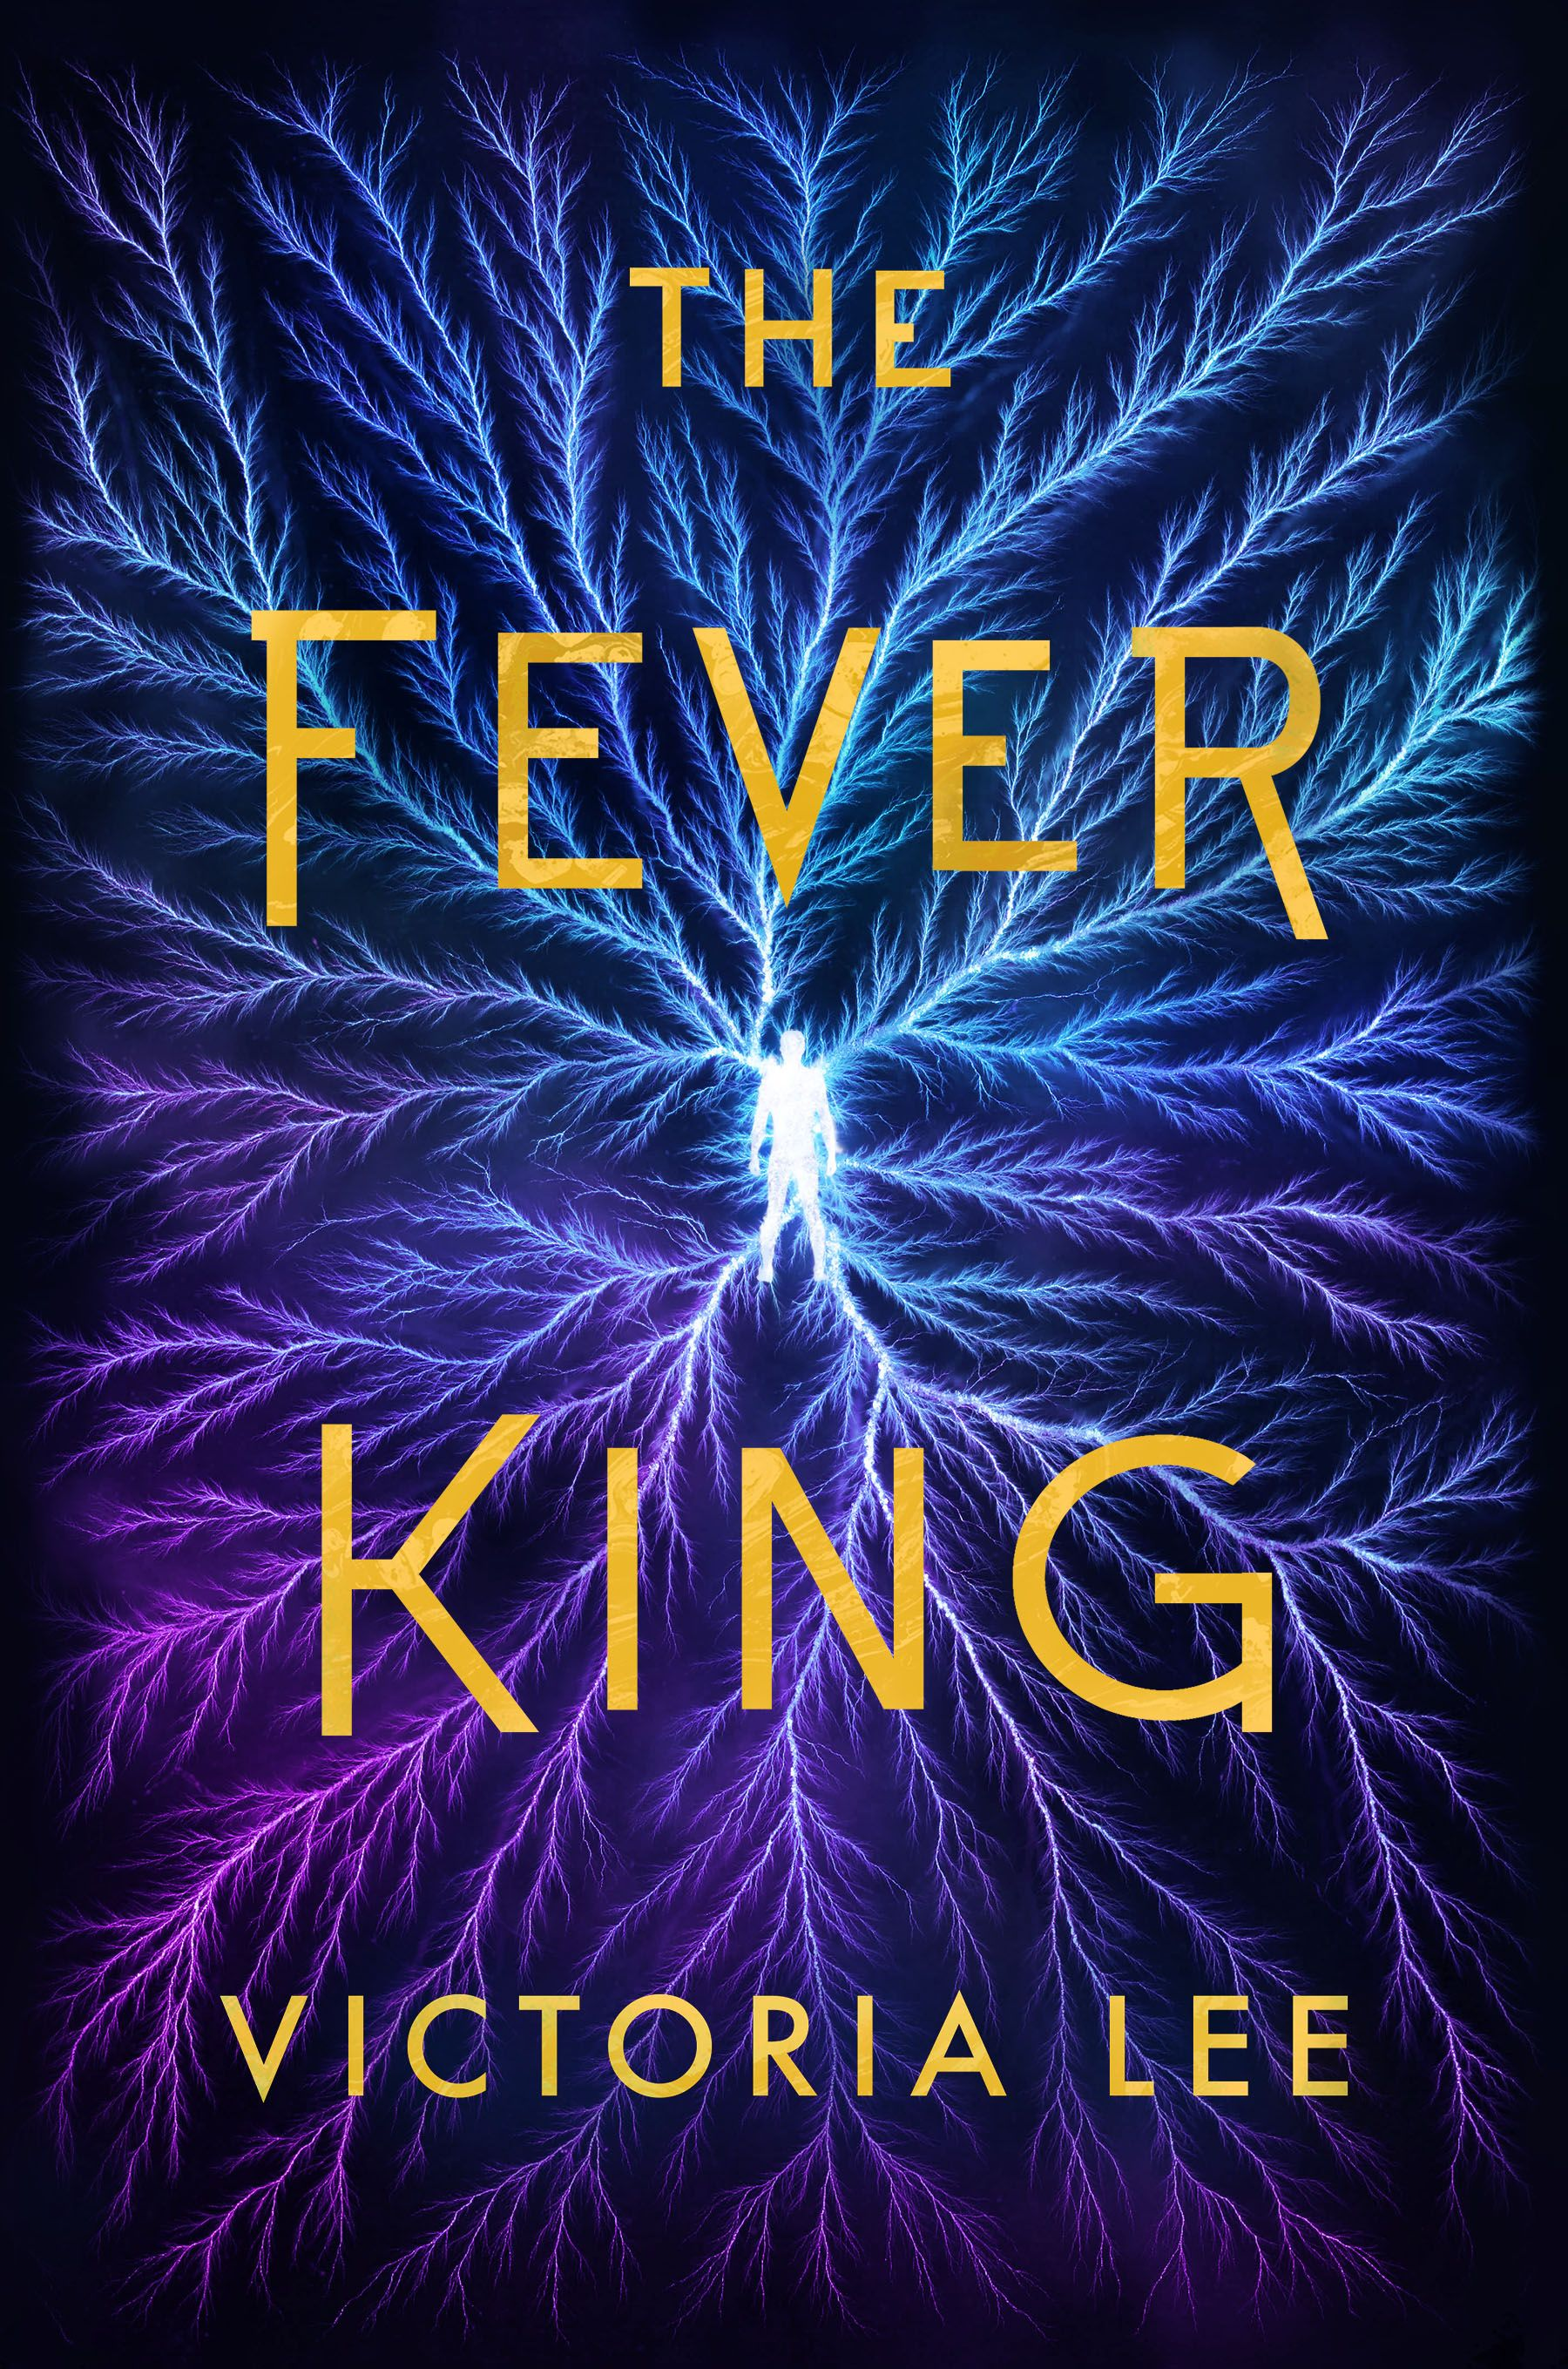 The Fever King''s Victoria Lee: How writing fanfiction got me a book